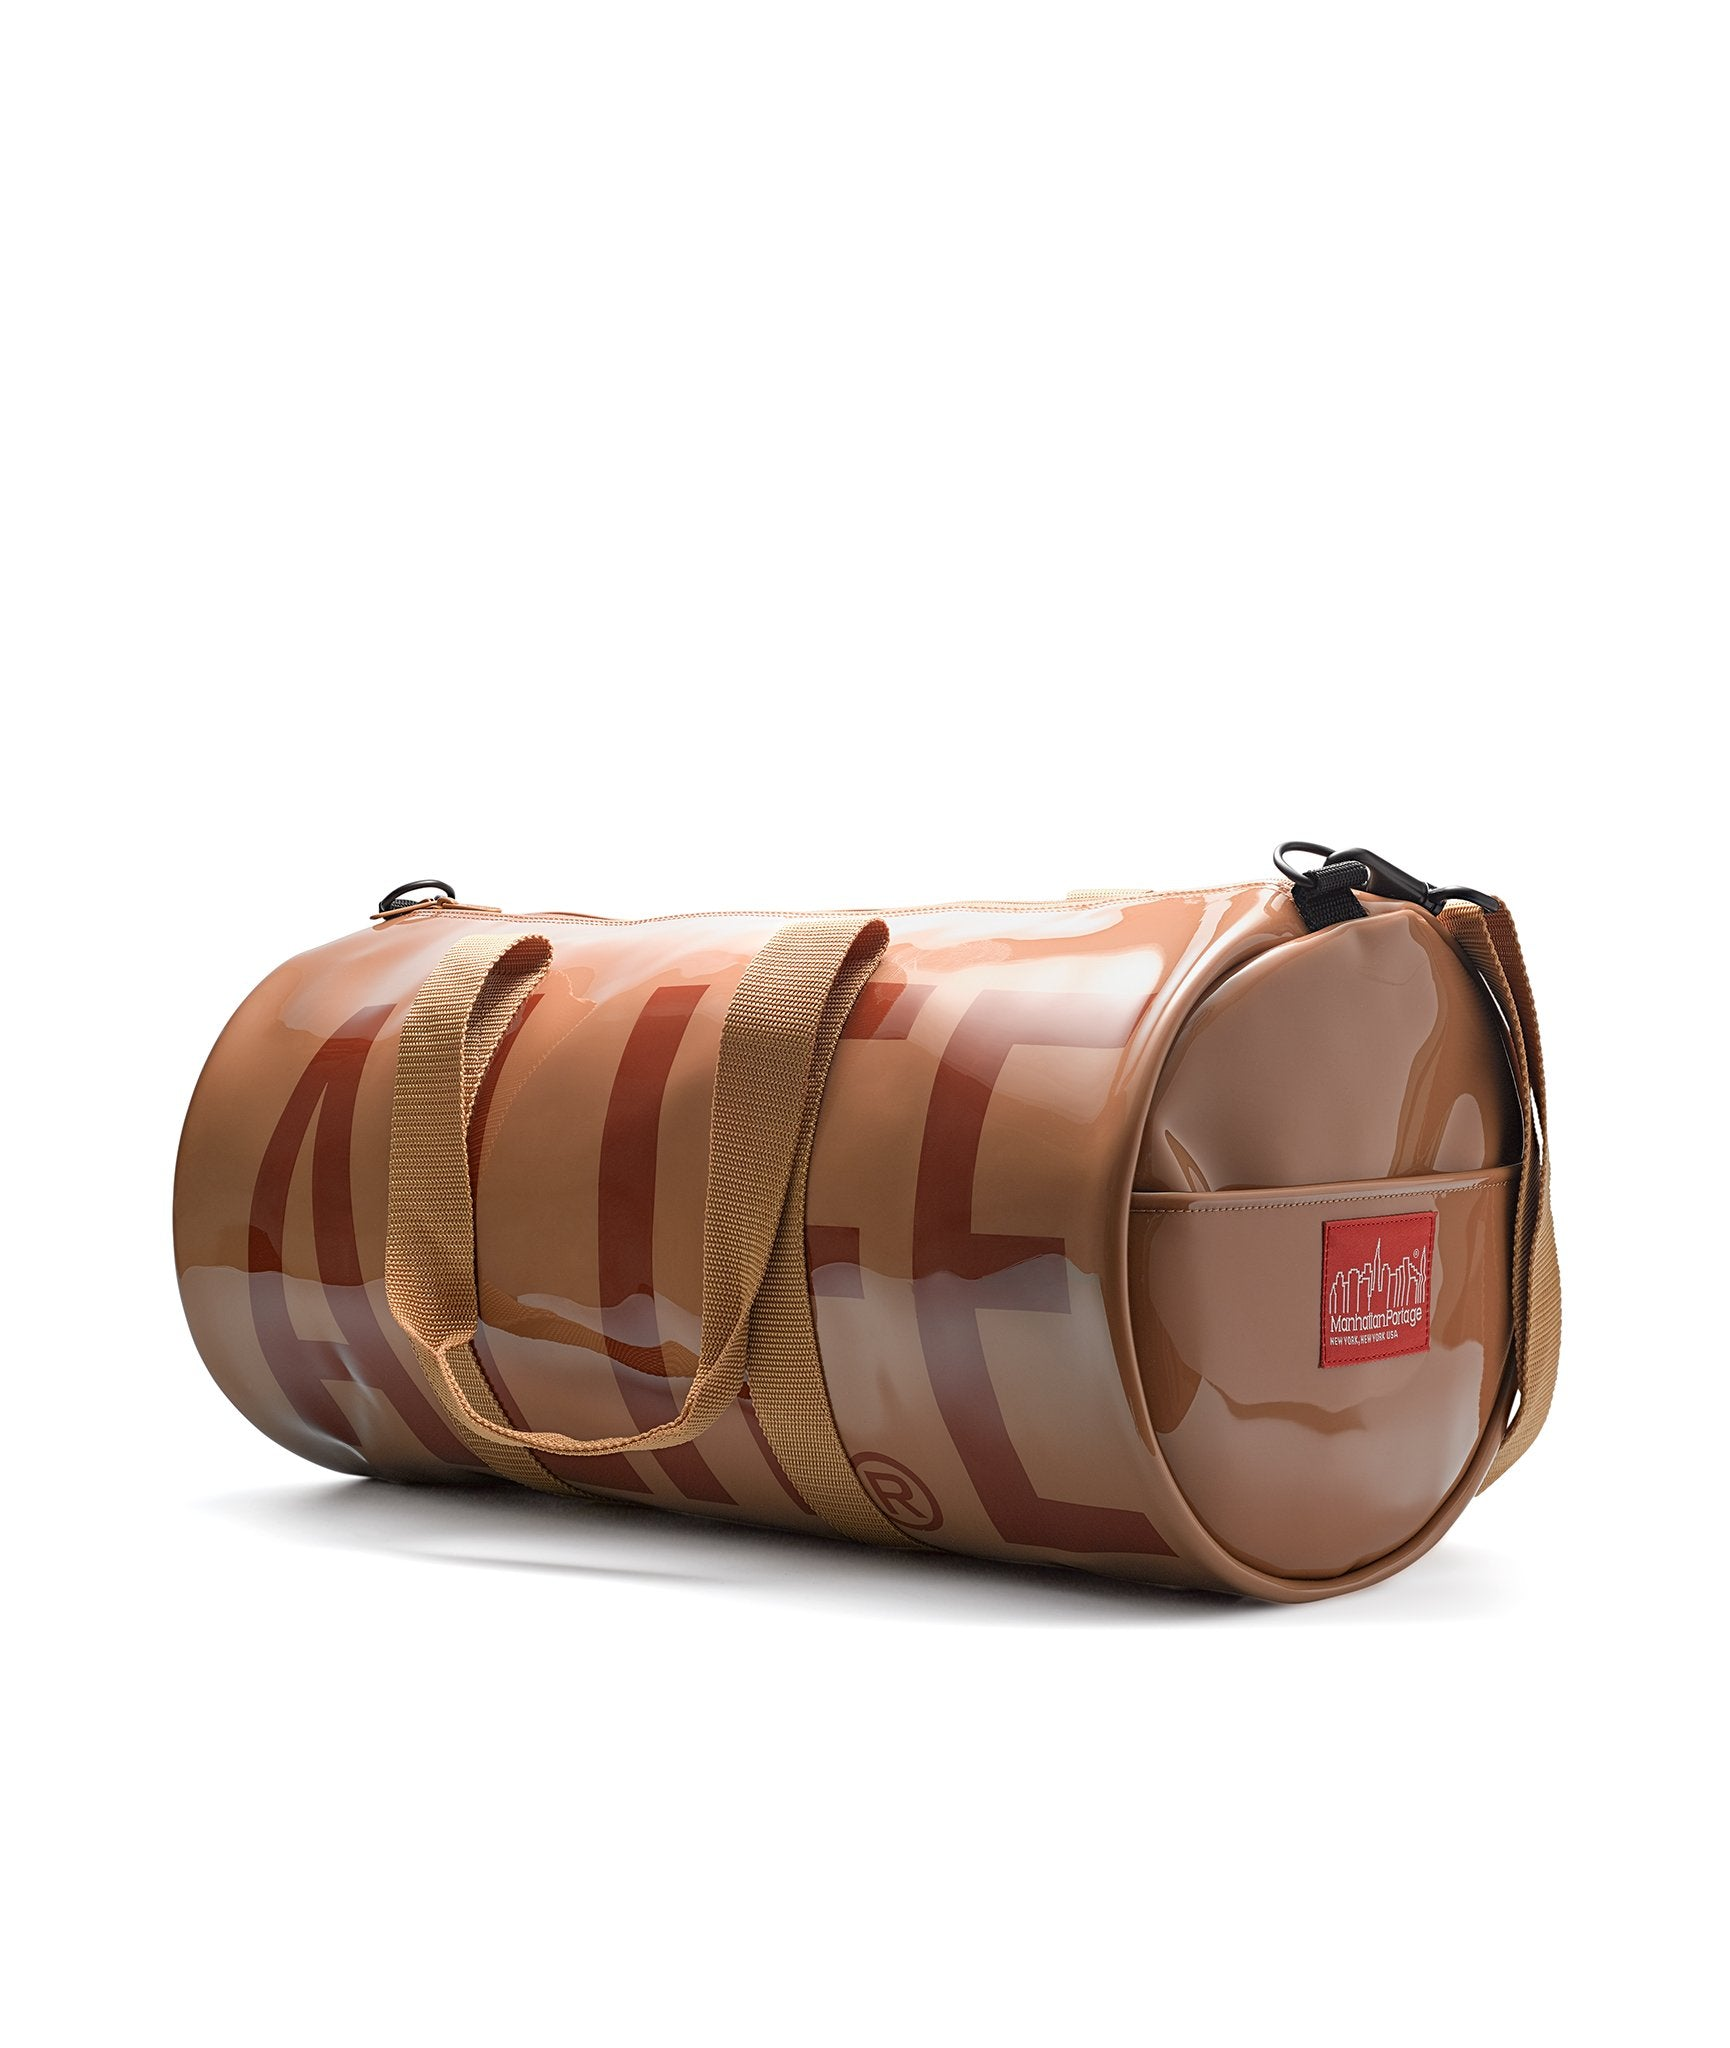 Alife/Manhattan Portage Large Drumbag angled view with straps down